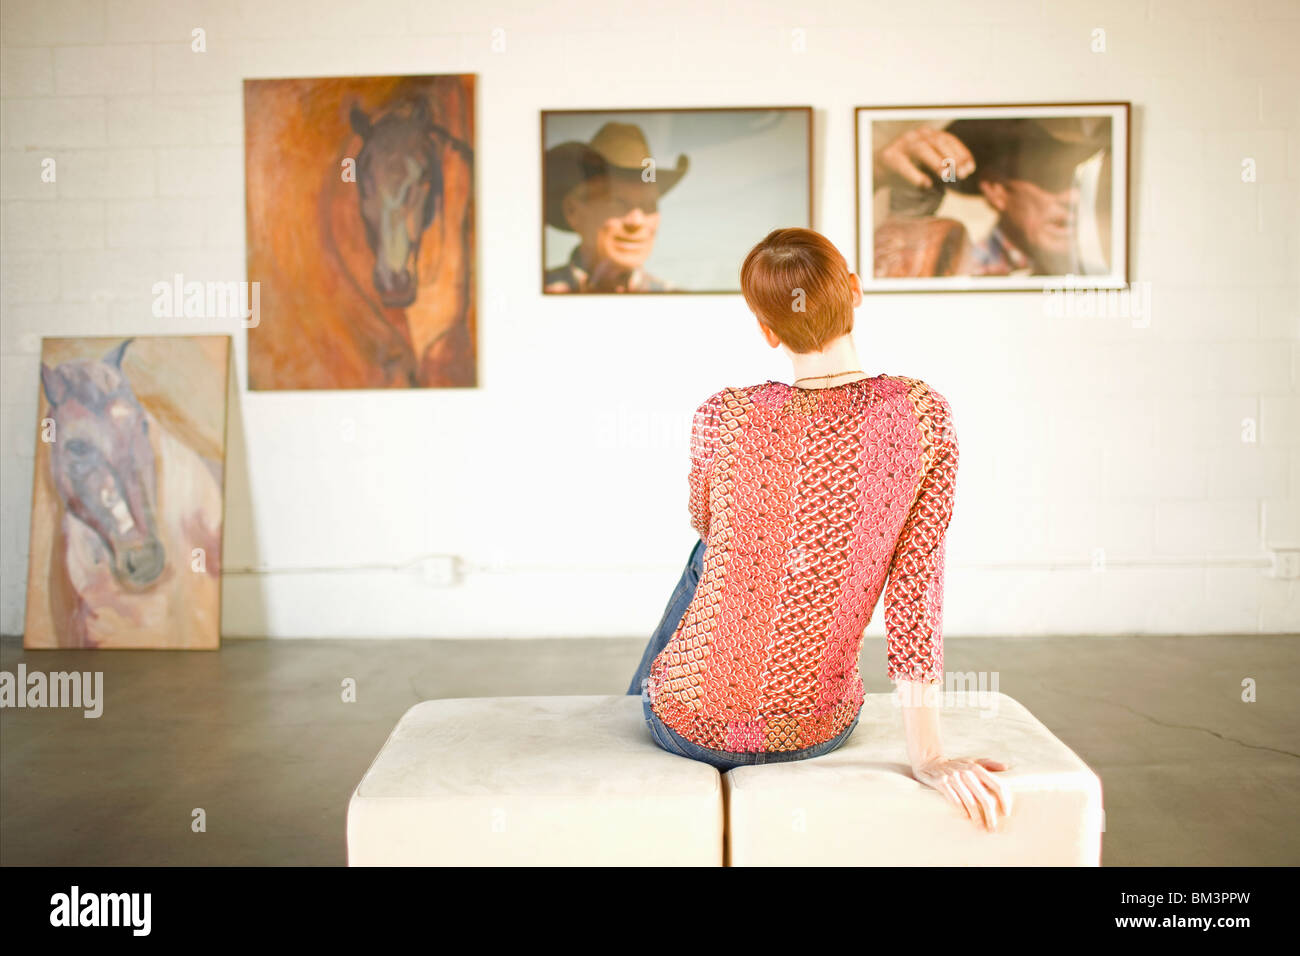 Woman in art gallery - Stock Image